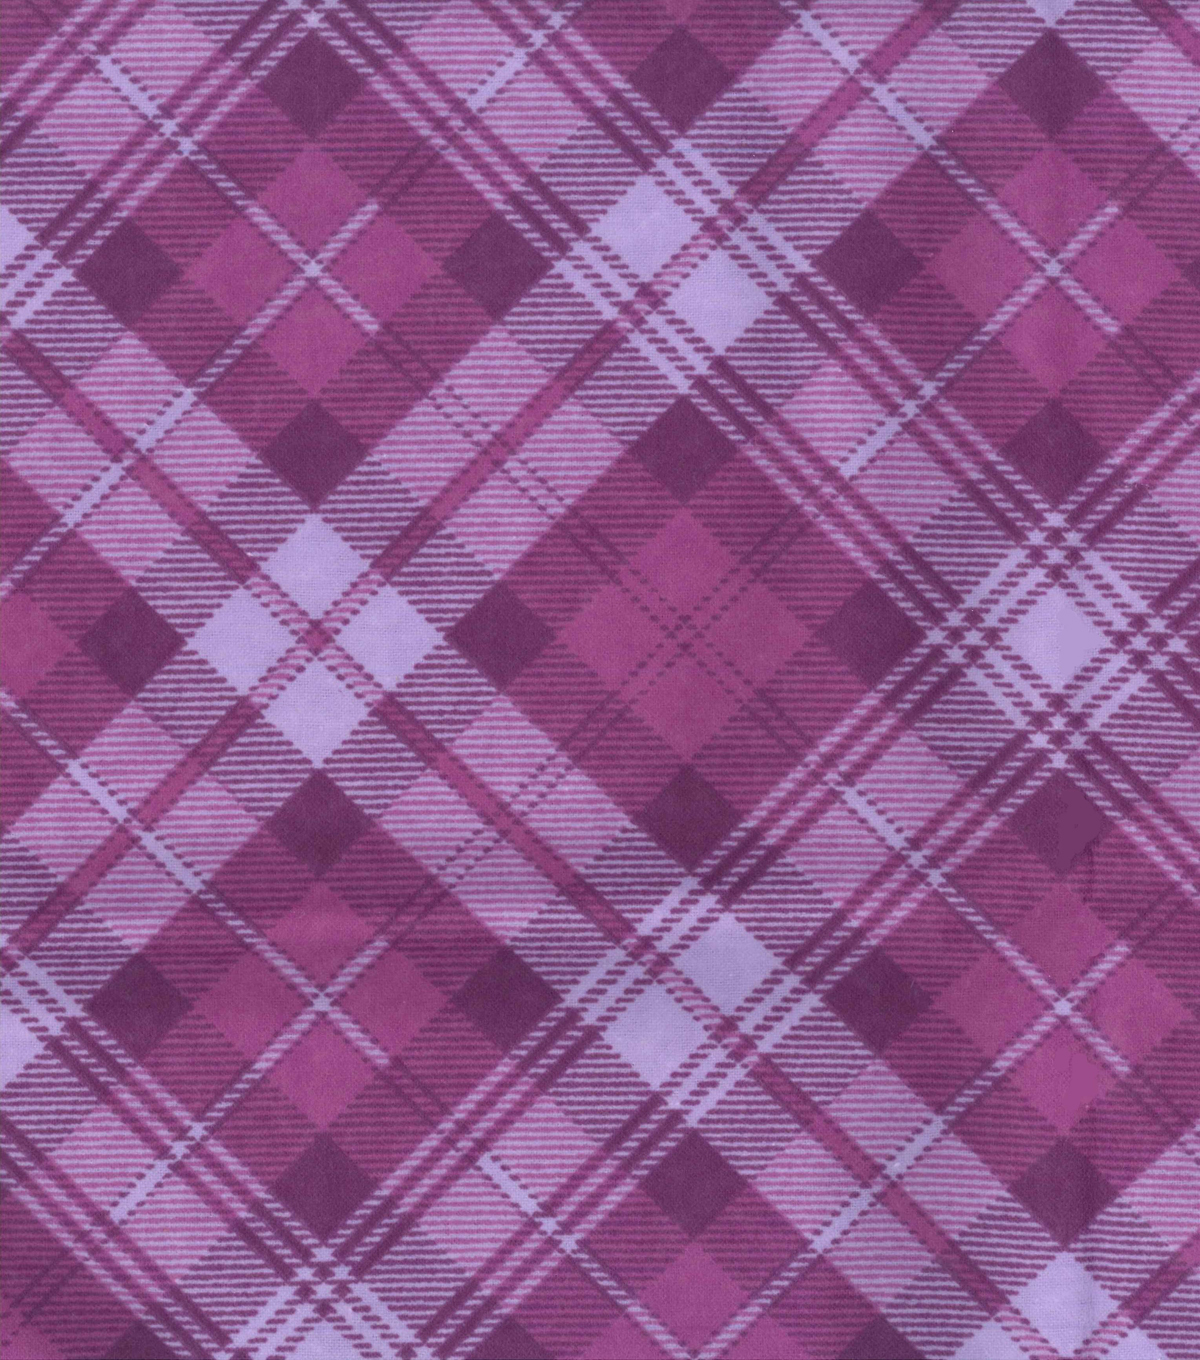 Snuggle Flannel Fabric -Radiant Orchid Plaid